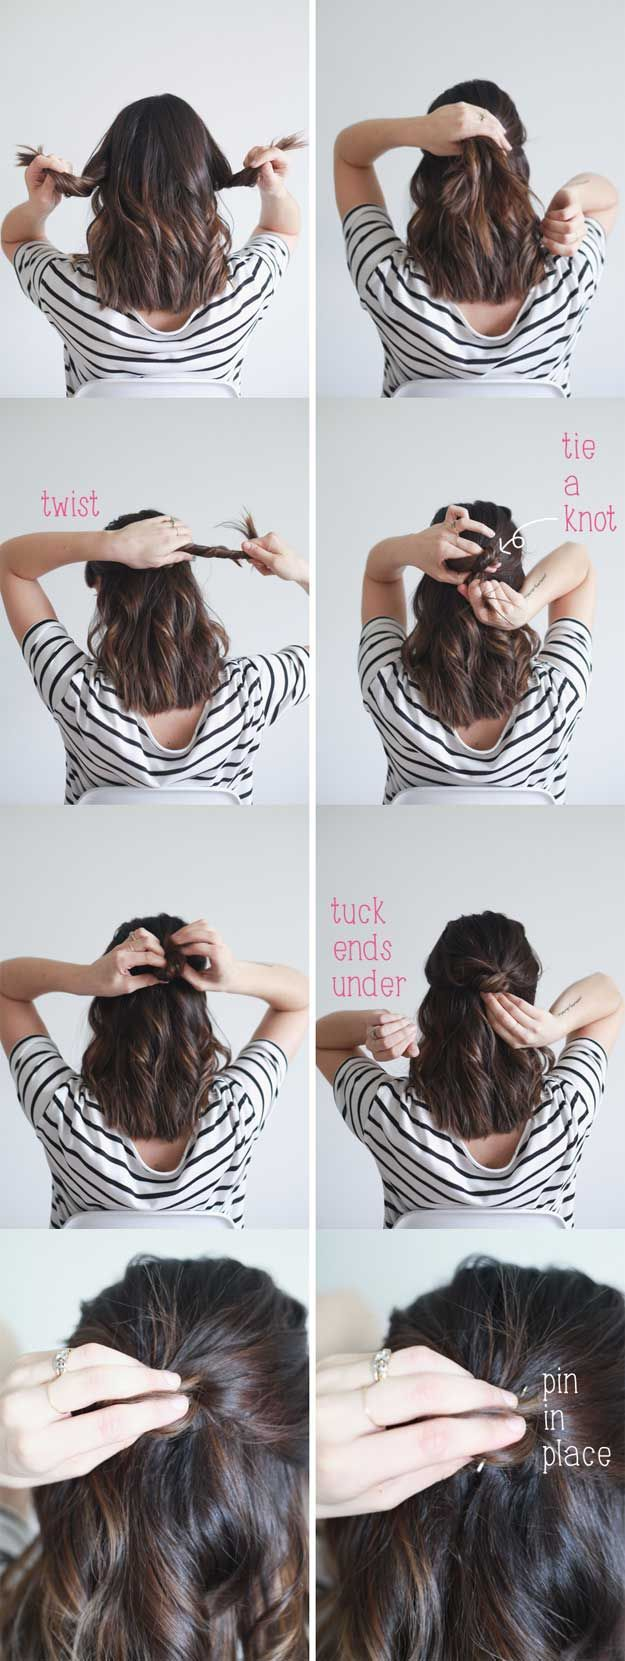 Best minute hairstyles quick half up hair tutorial for school